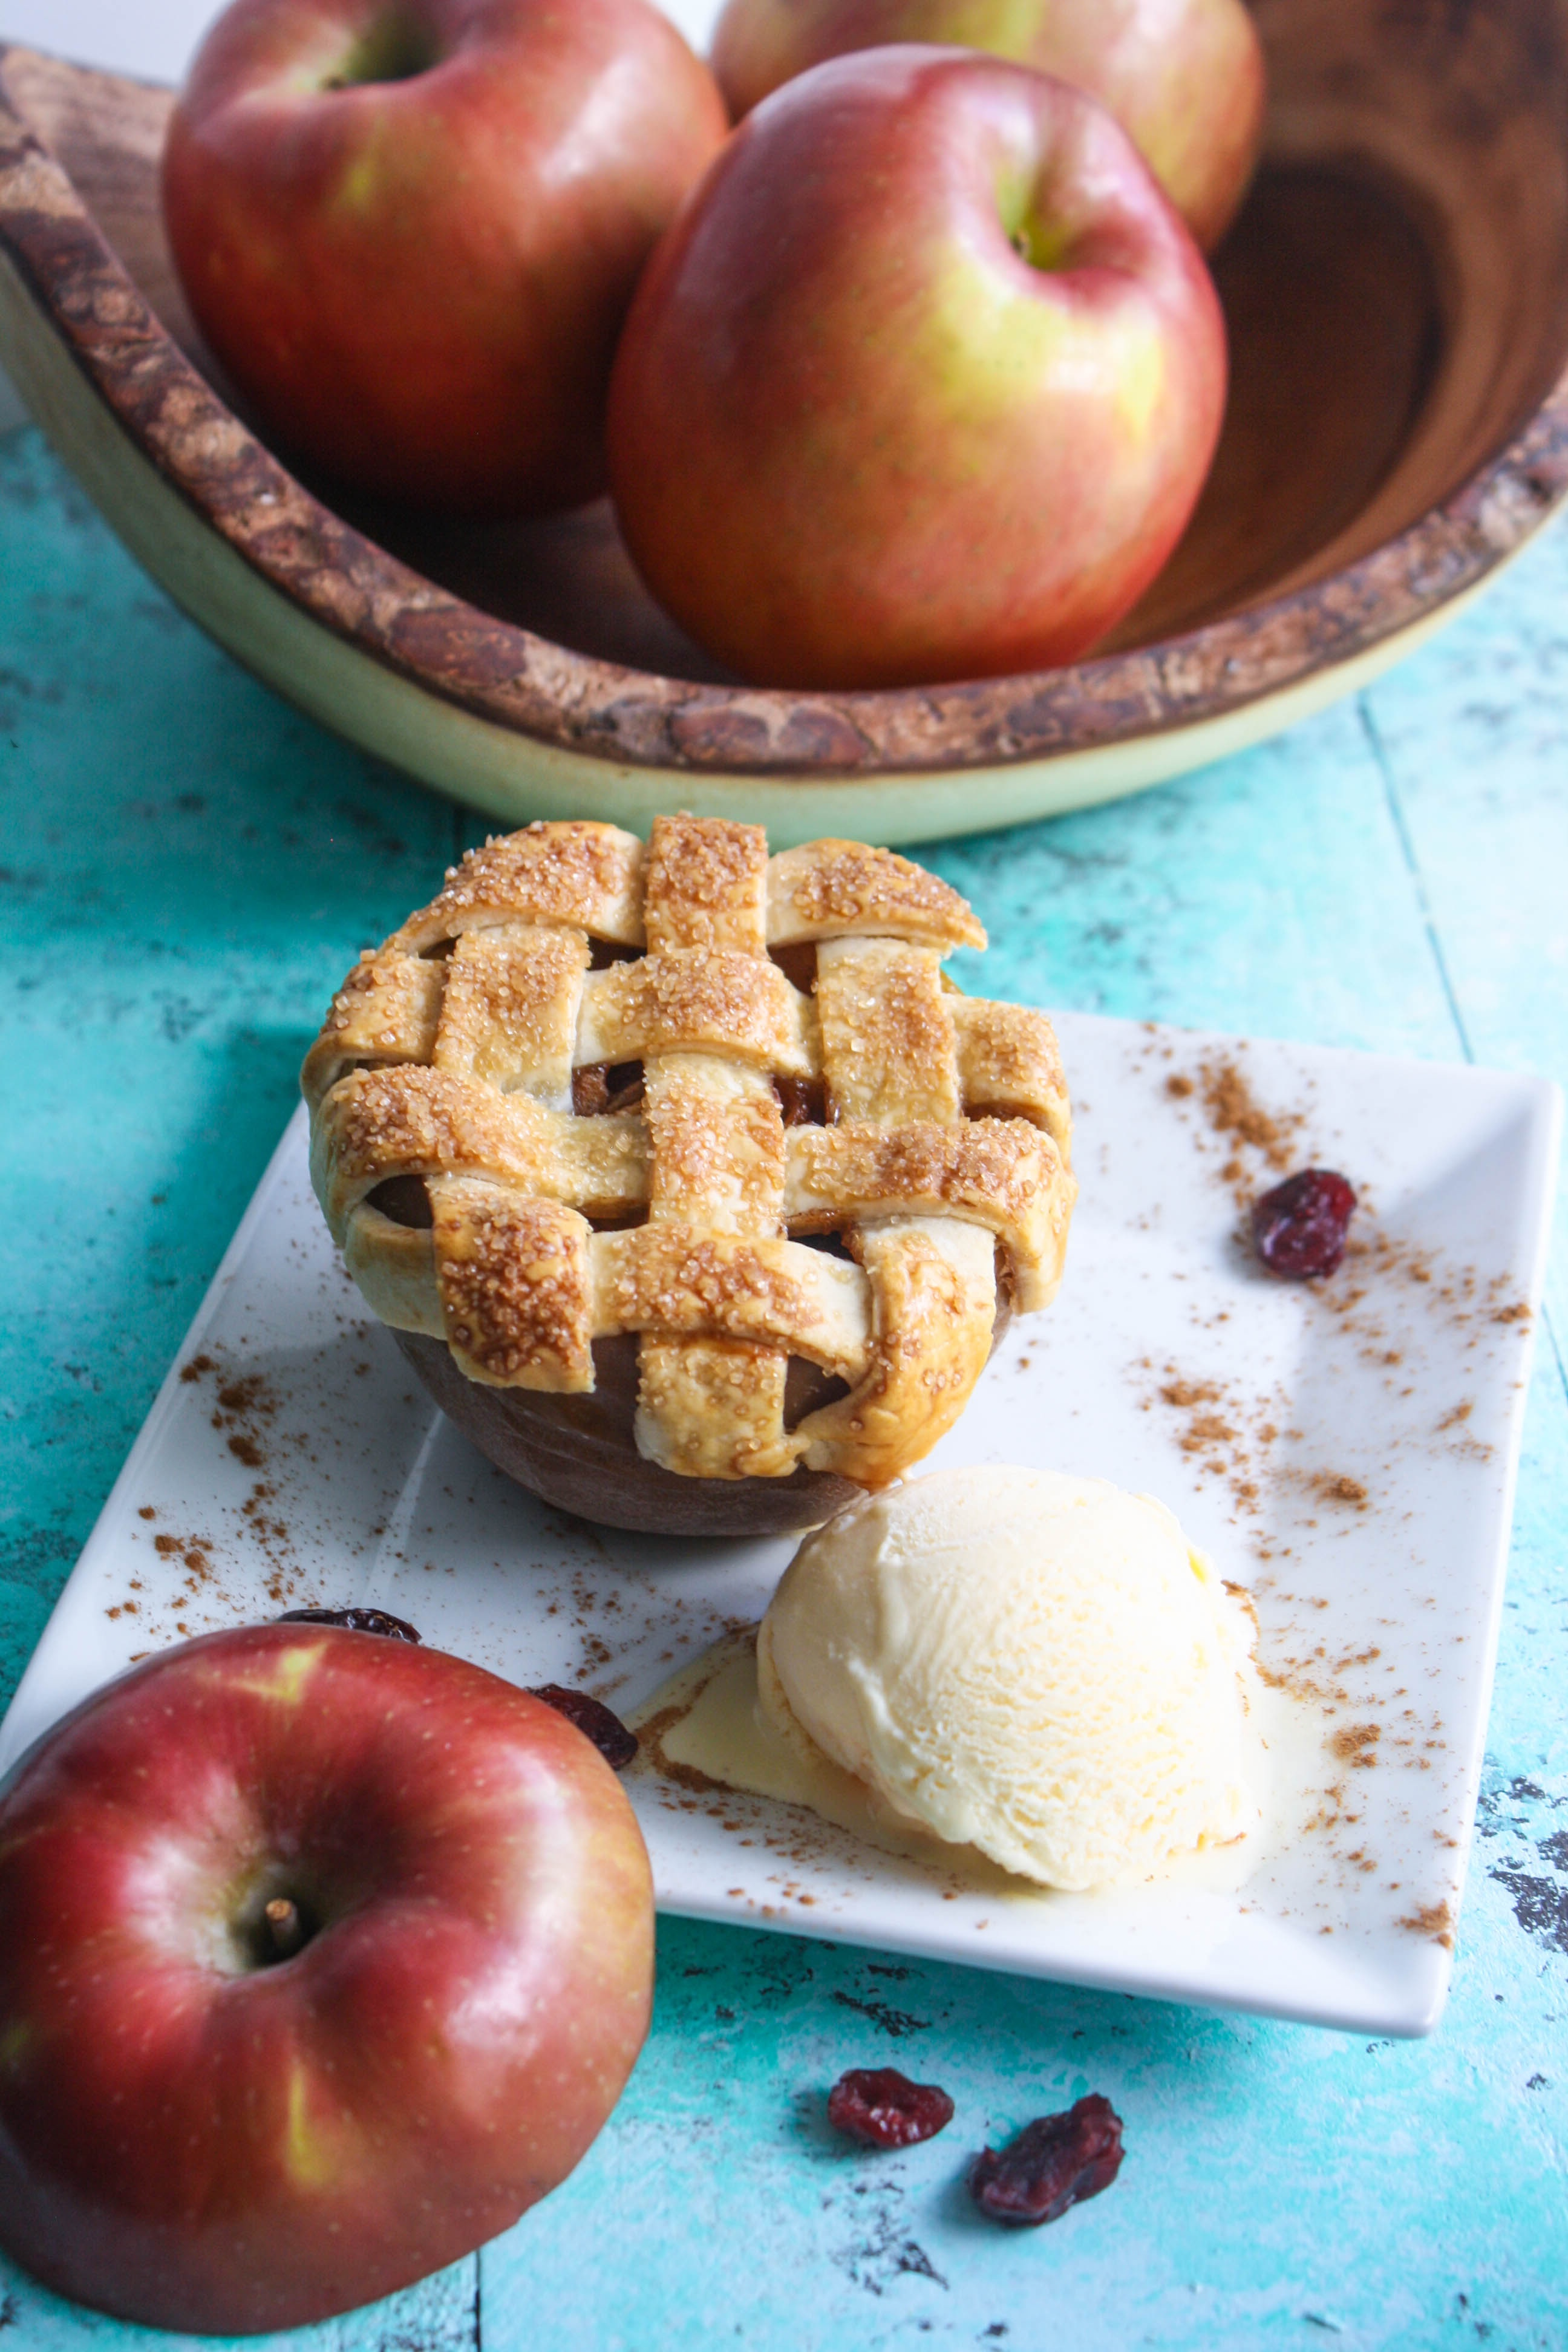 Apple-Cranberry Pie Baked Apples are a lovely treat for fall. These individual desserts are healthier than many, and taste amazing.